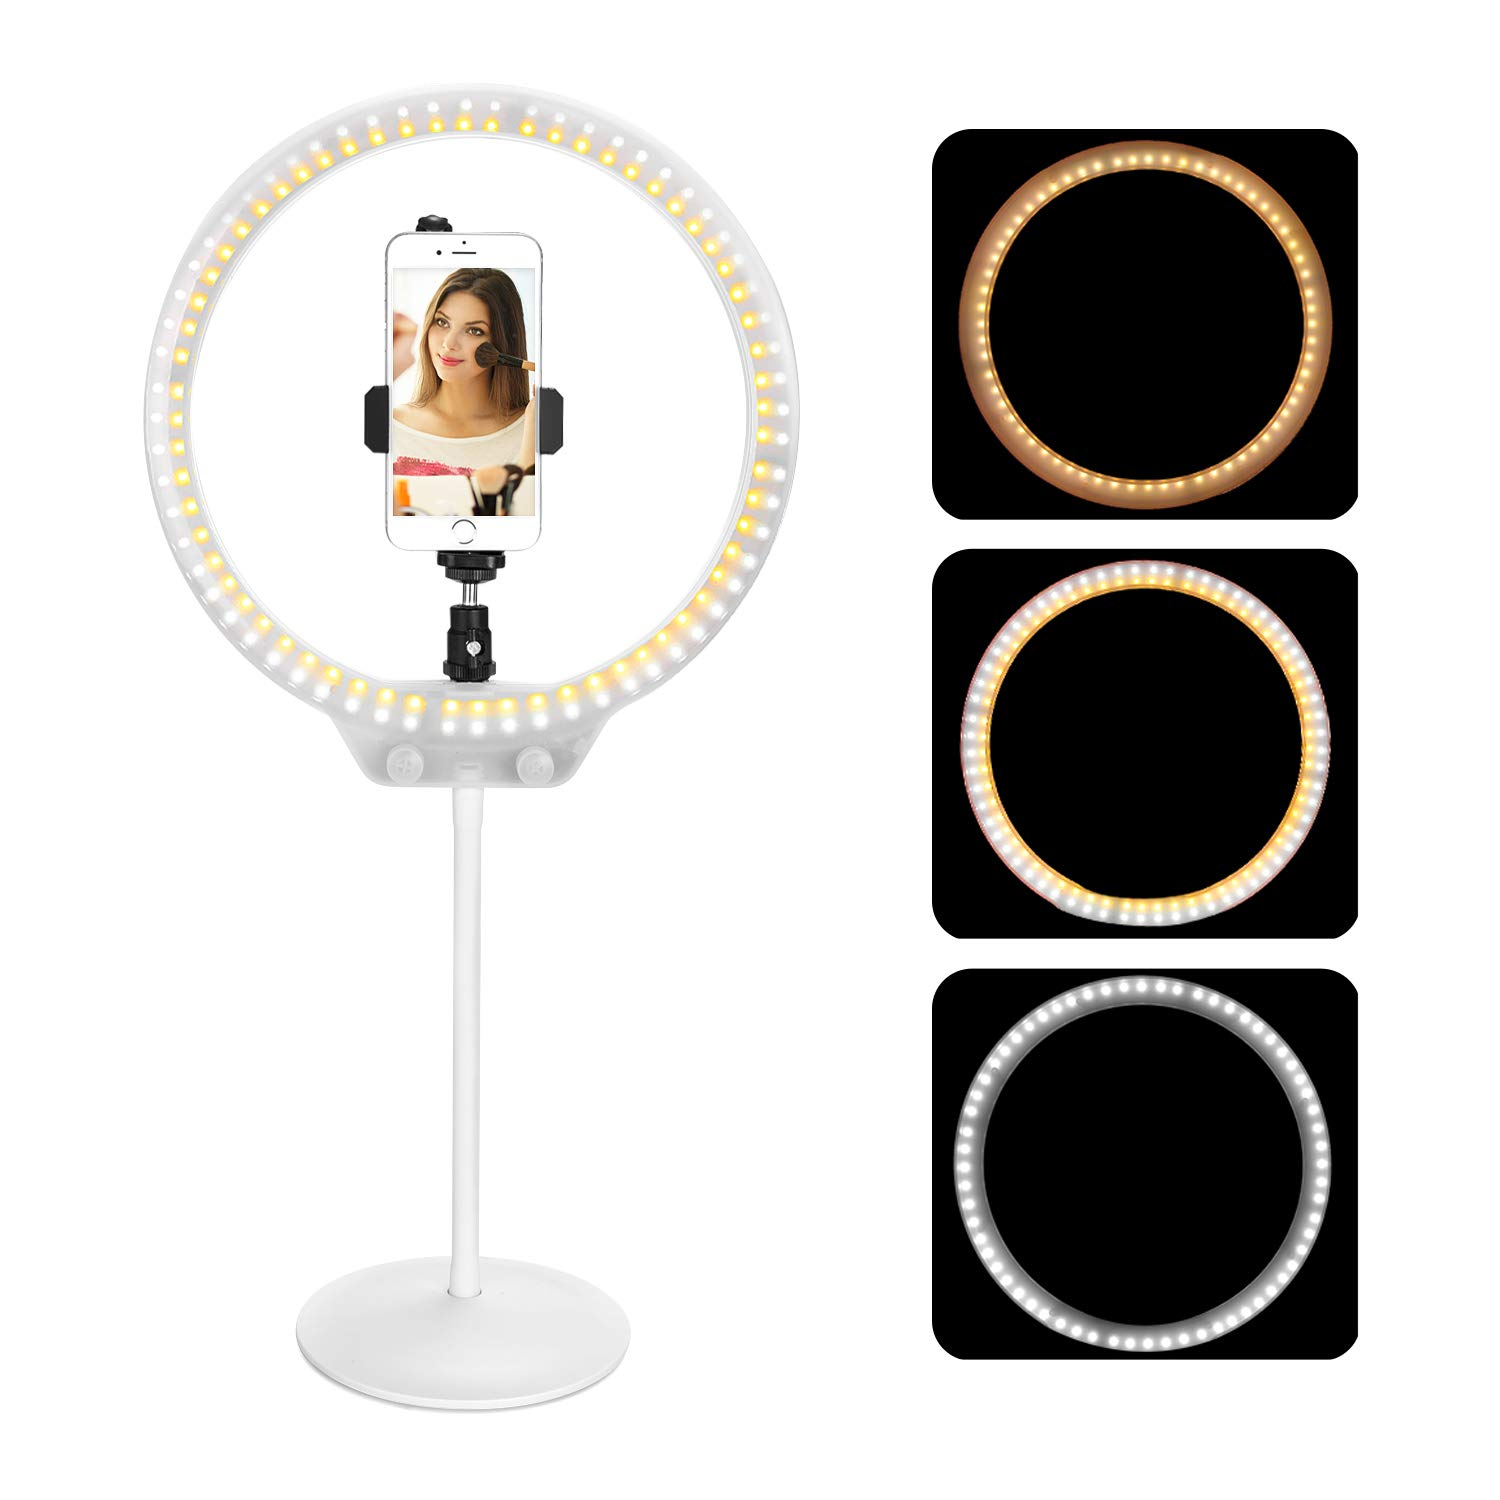 Sefile Ring Light, Zomei 10 Inches Dimmable LED Ring Light with Hose Support Desktop Stand, Table Top LED Selfie Ring Light with Phone Holder for Makeup and Self-Portrait Video Photography